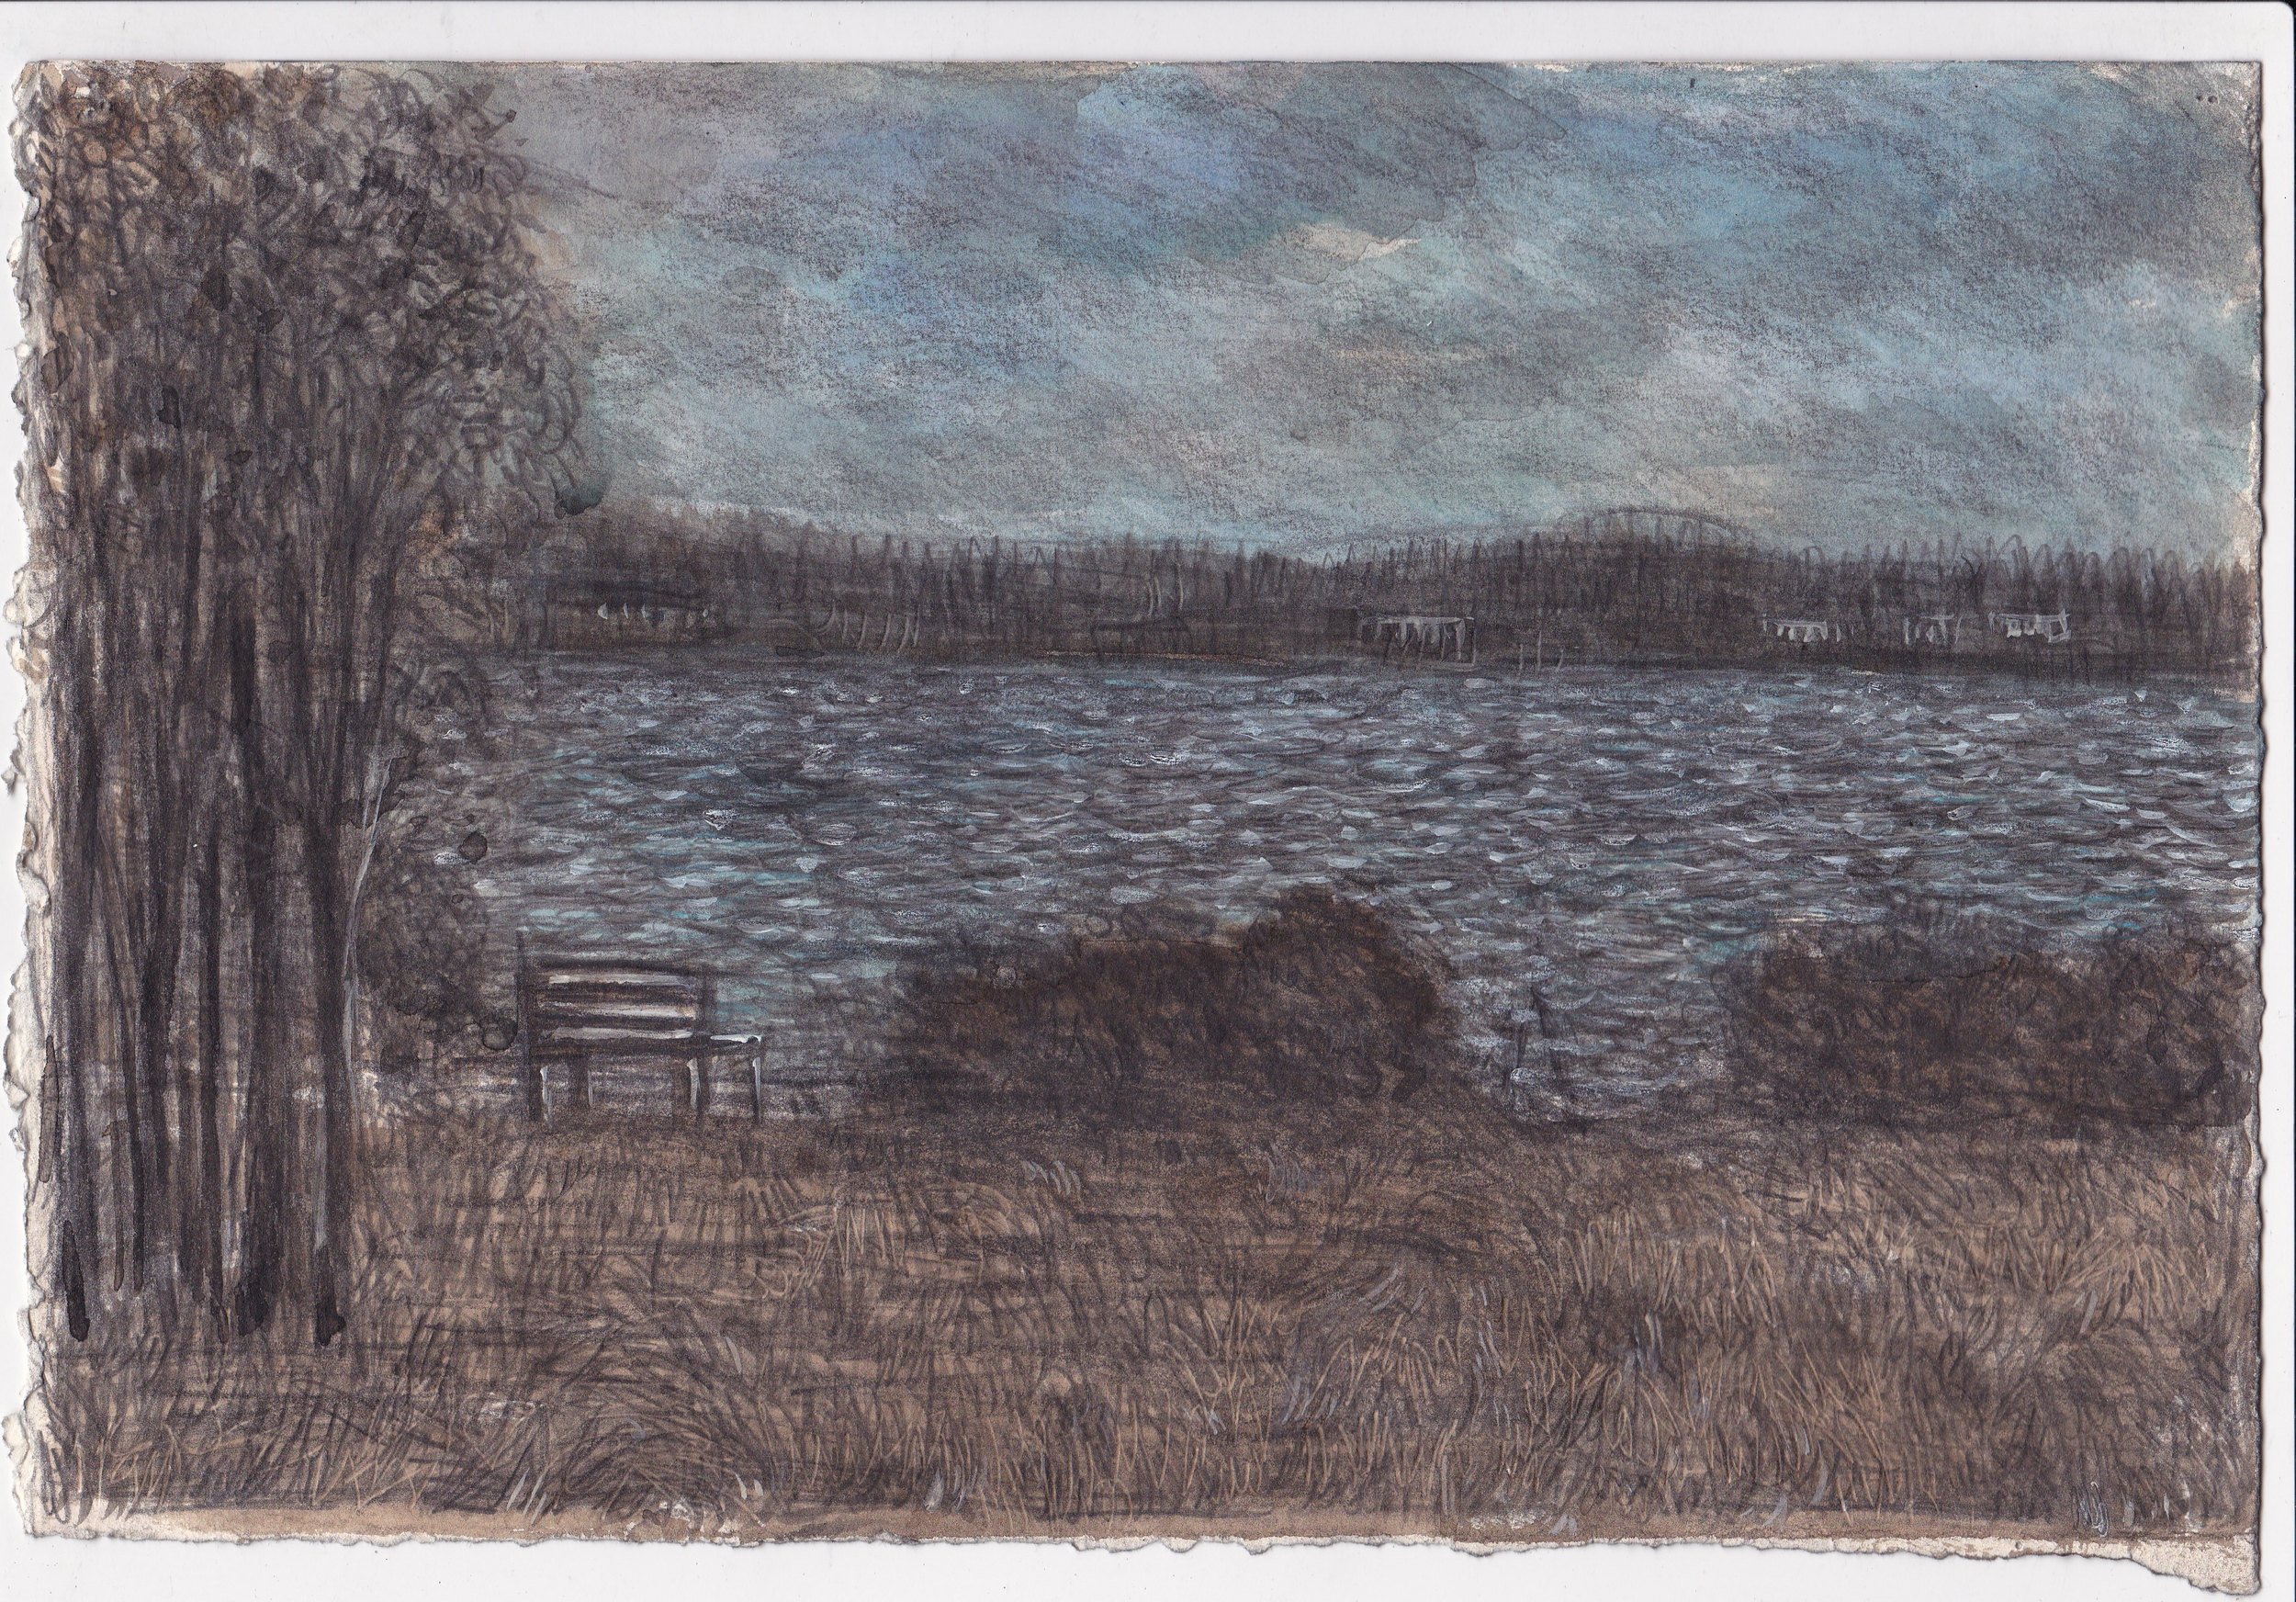 Landscape with Bench , 2013, graphite, and ink on paper, 7.5x11 inches